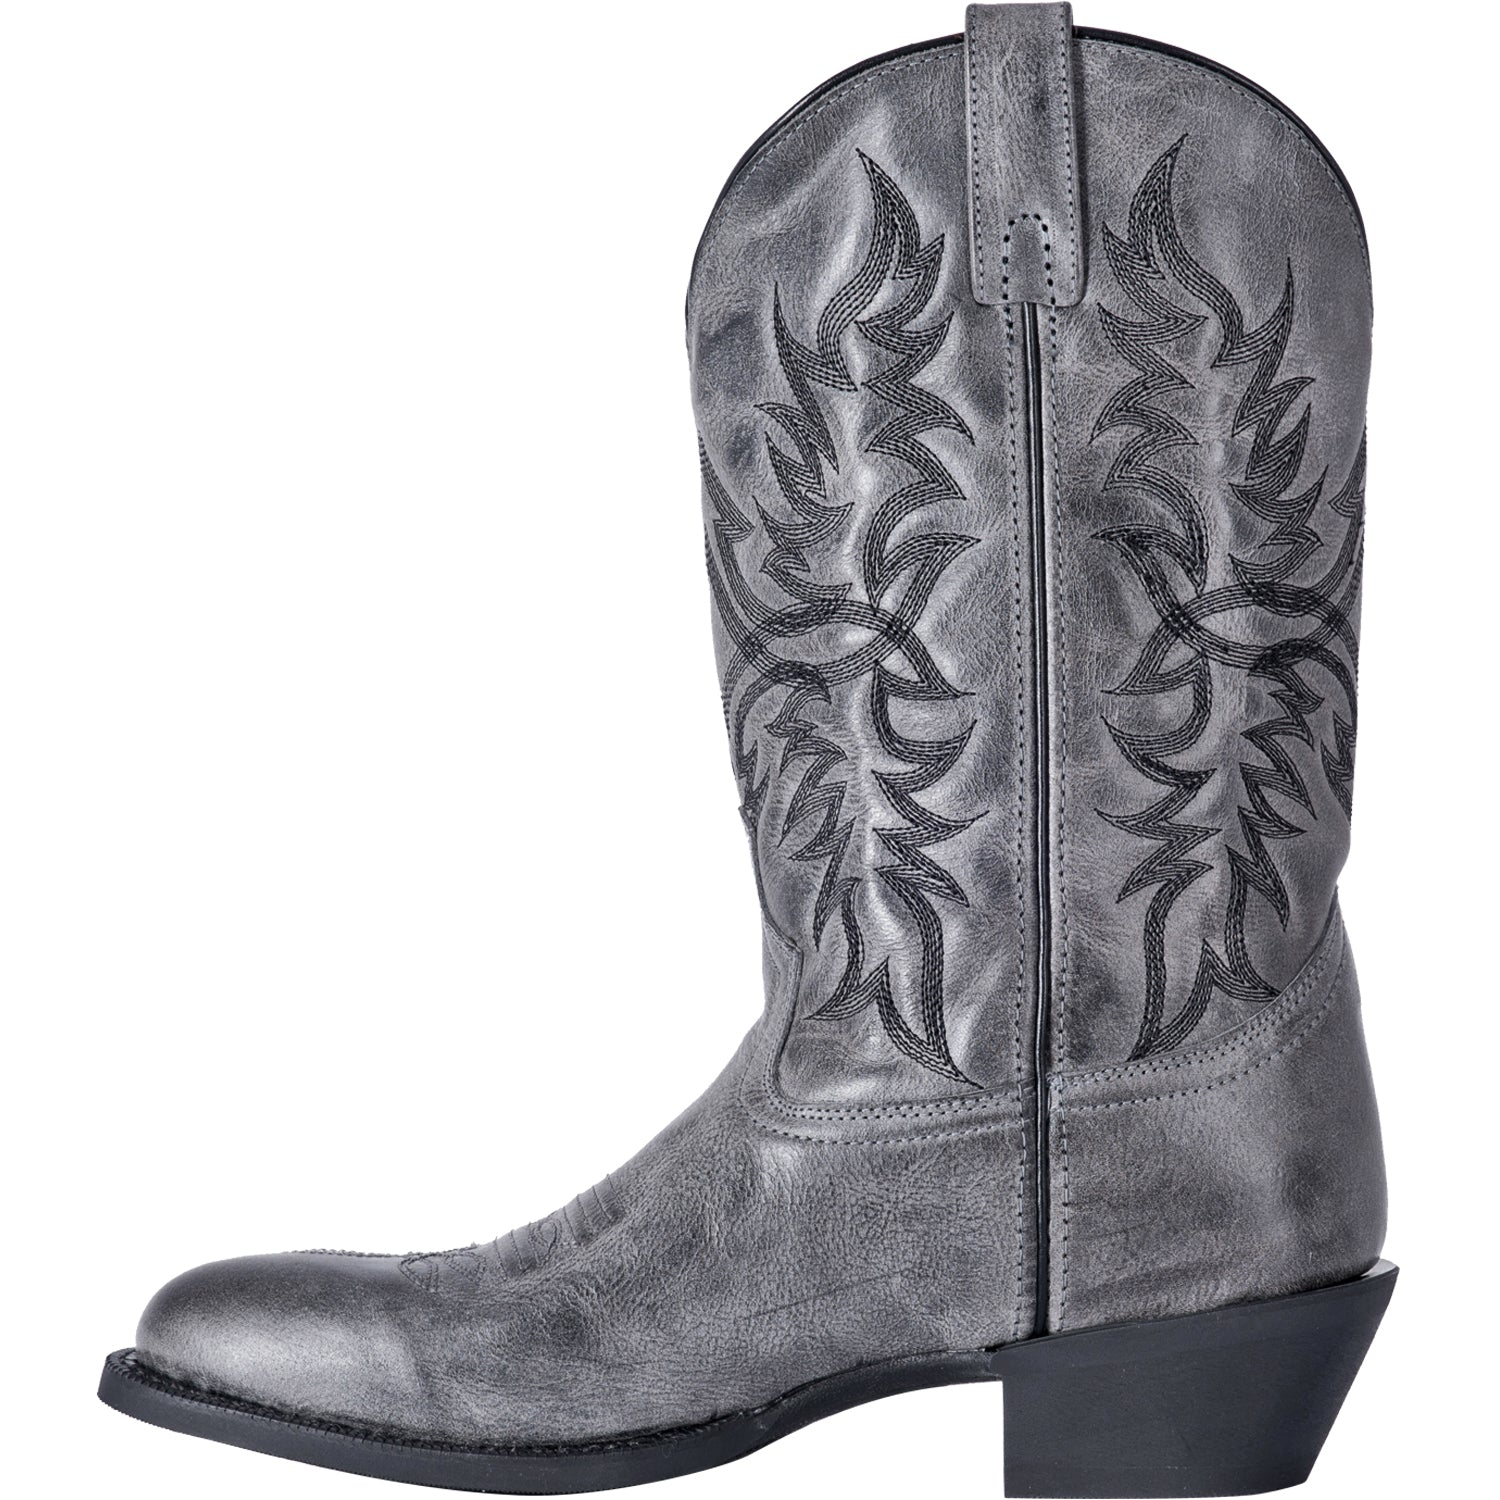 HARDING LEATHER BOOT 4196591632426